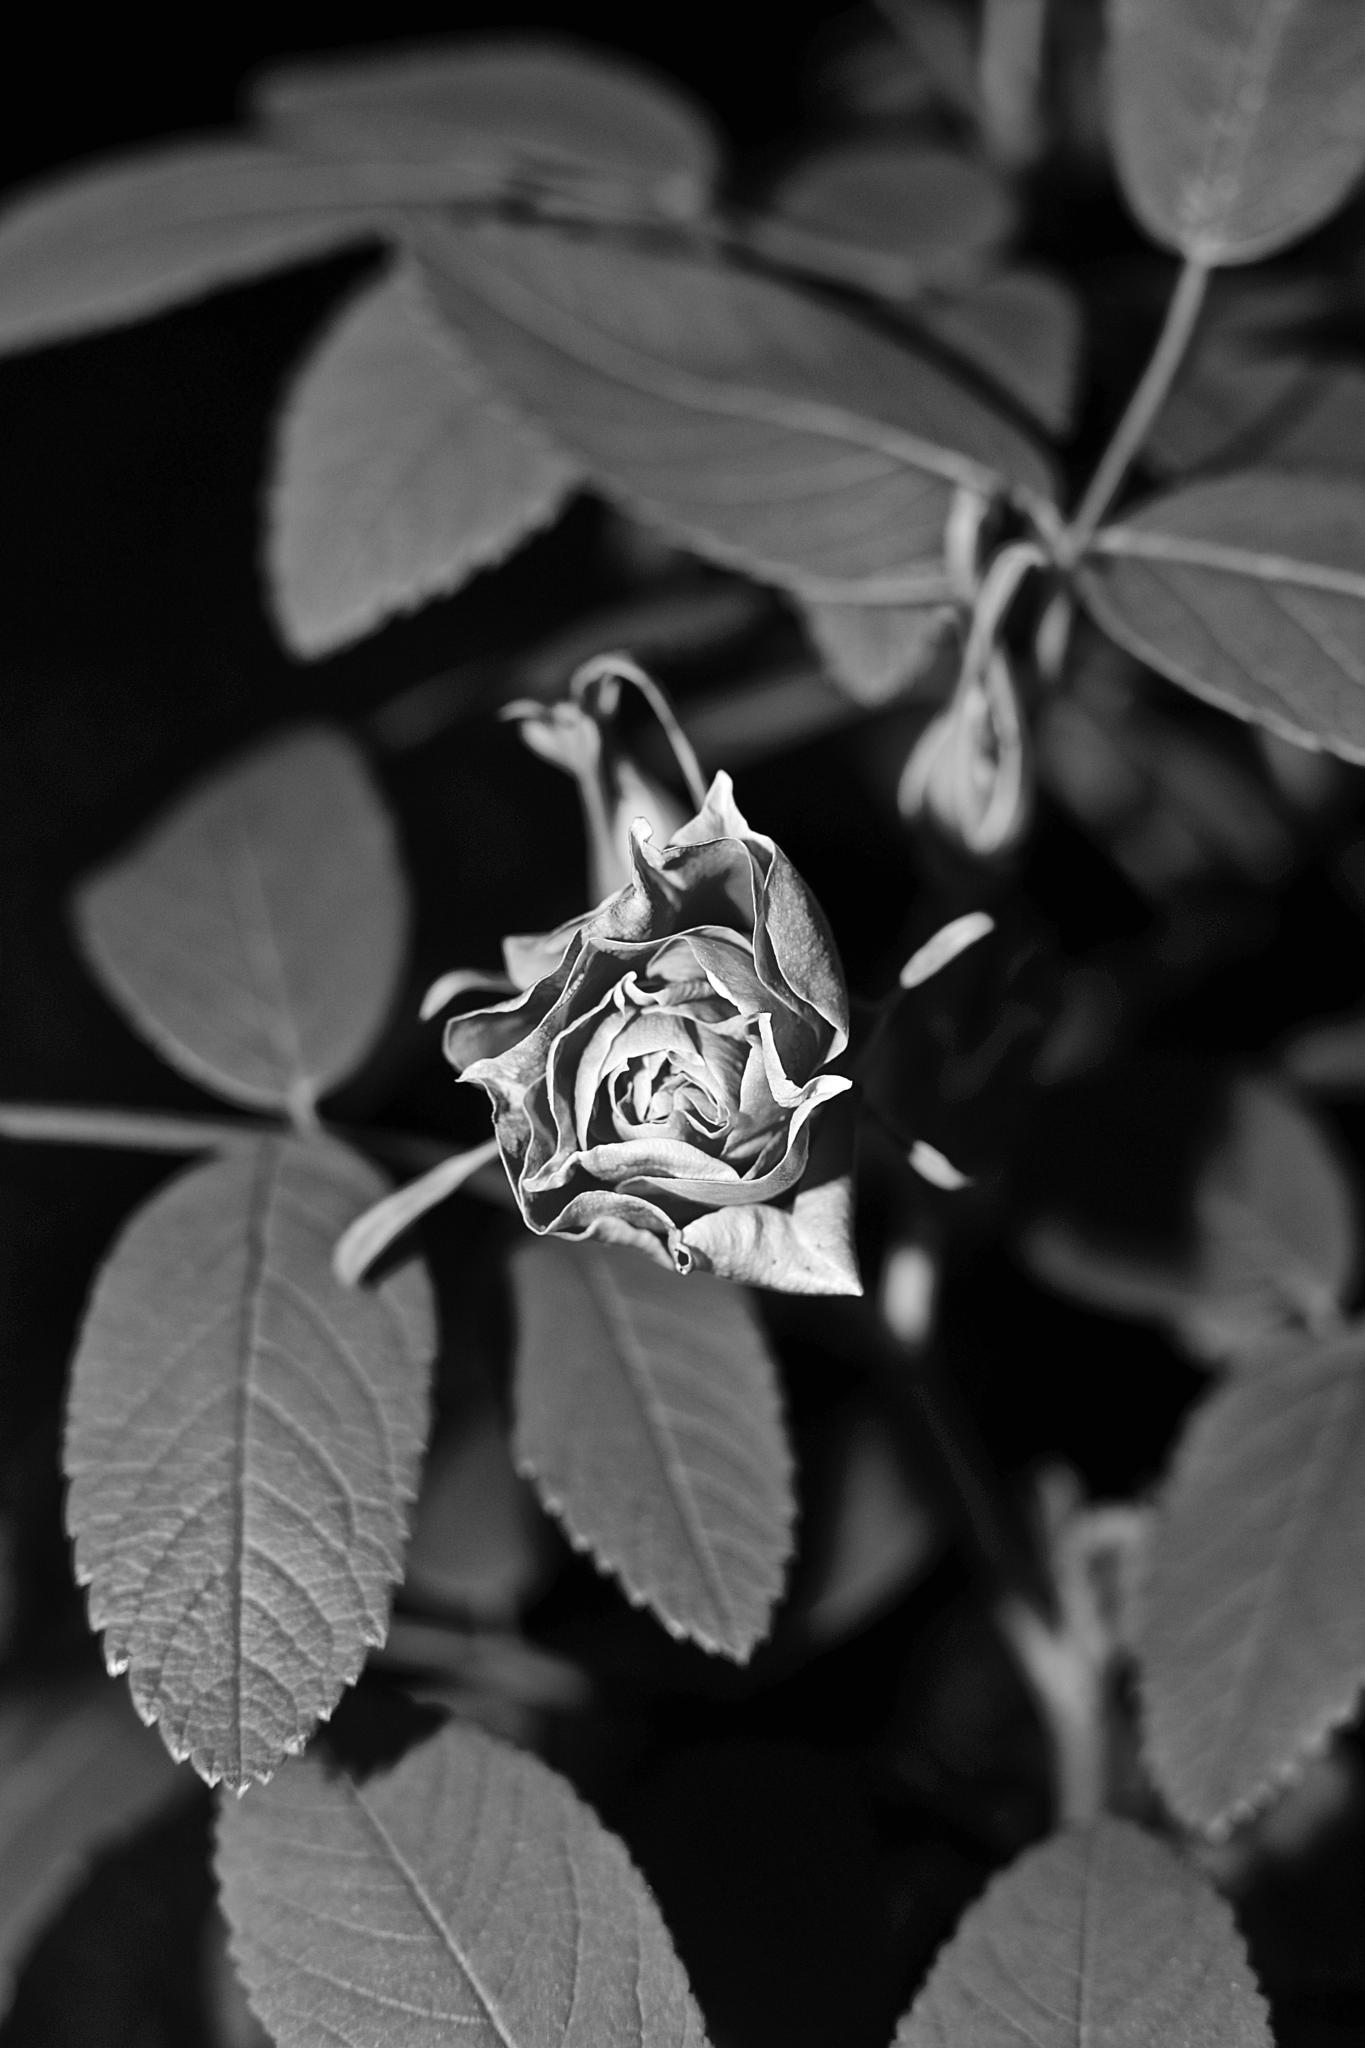 my little rose bud by pesnell1